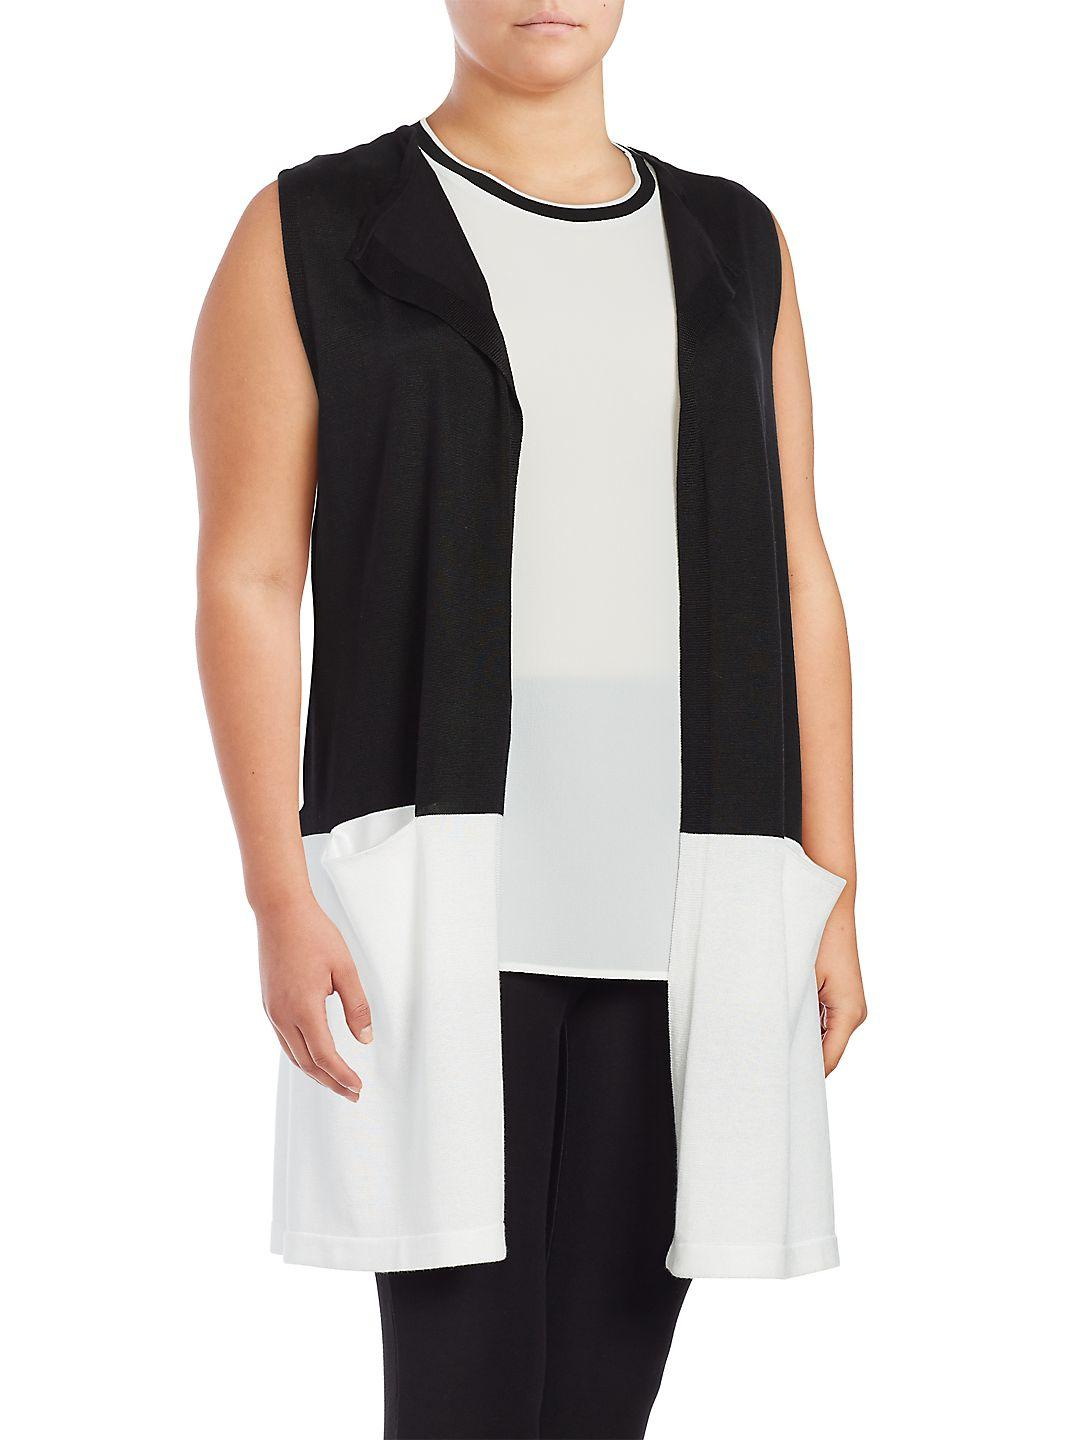 14358417928f1 Lyst - Vince Camuto Colorblocked Sleeveless Duster Vest in Black